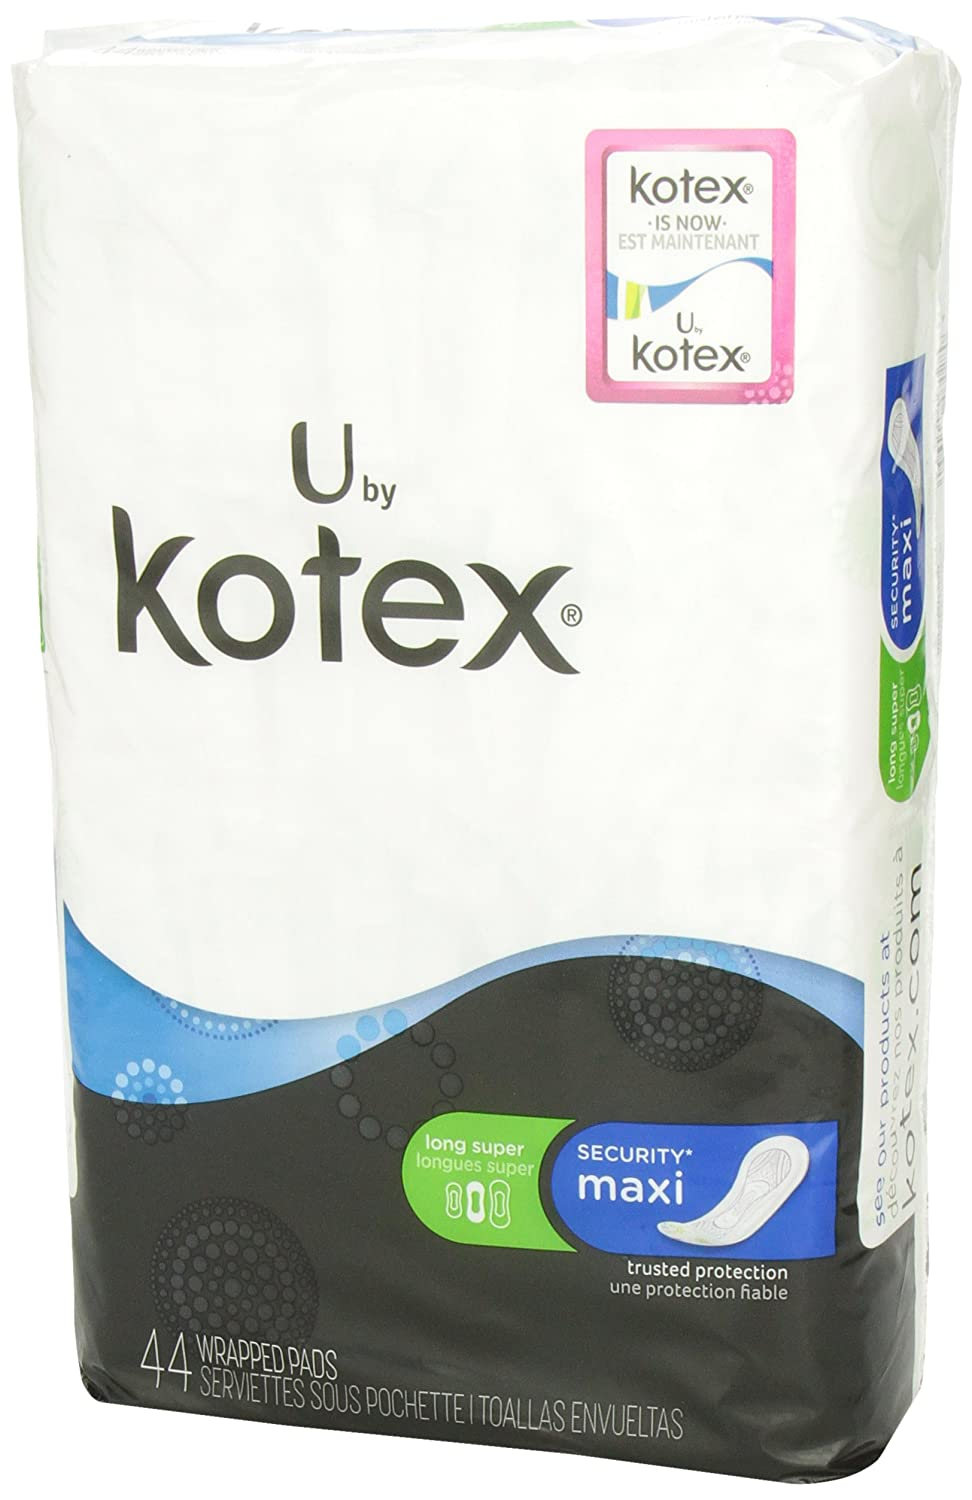 Amazon.com: U by Kotex Security Maxi, Long Super, Unscented, 44 Count: Health & Personal Care